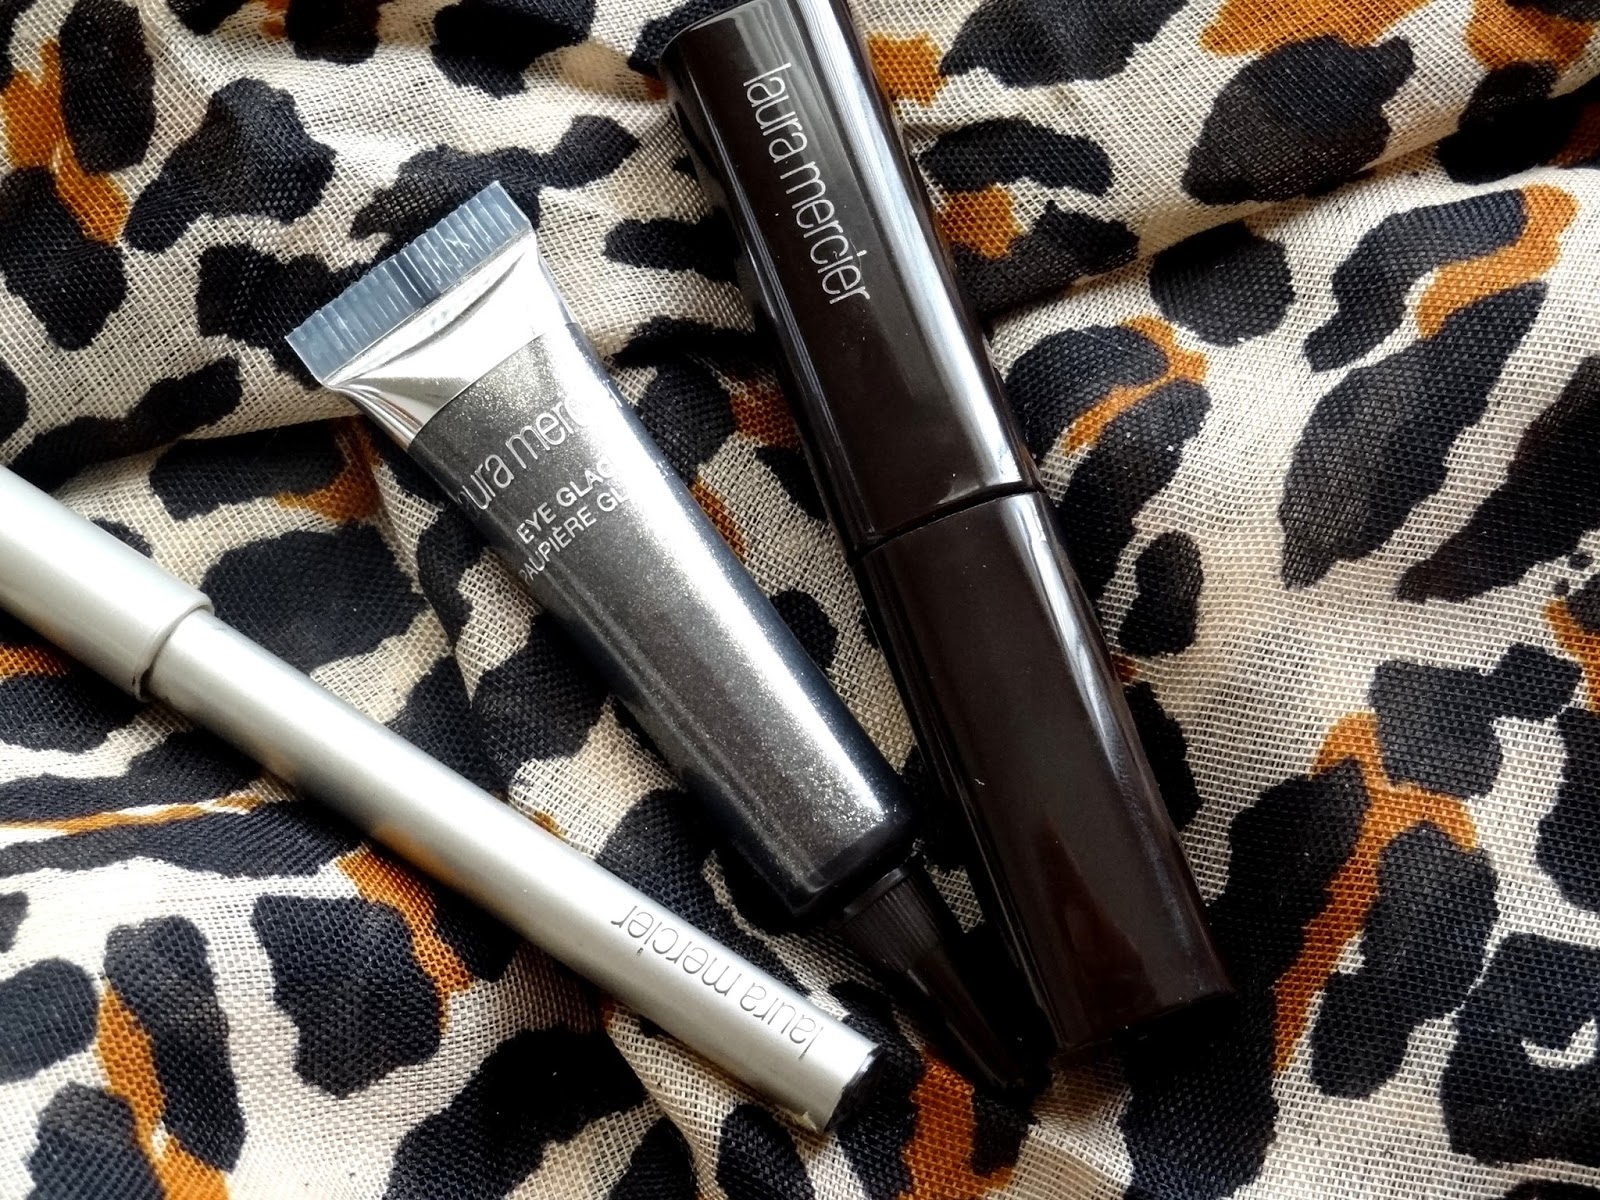 Laura Mercier 'Black Diamond' Eye Transformer Trio Eye Glacé in Black Diamond, Kohl Eye Pencil in Jet Black, Full Blown Volume Suprême Lash Building Mascara in Black